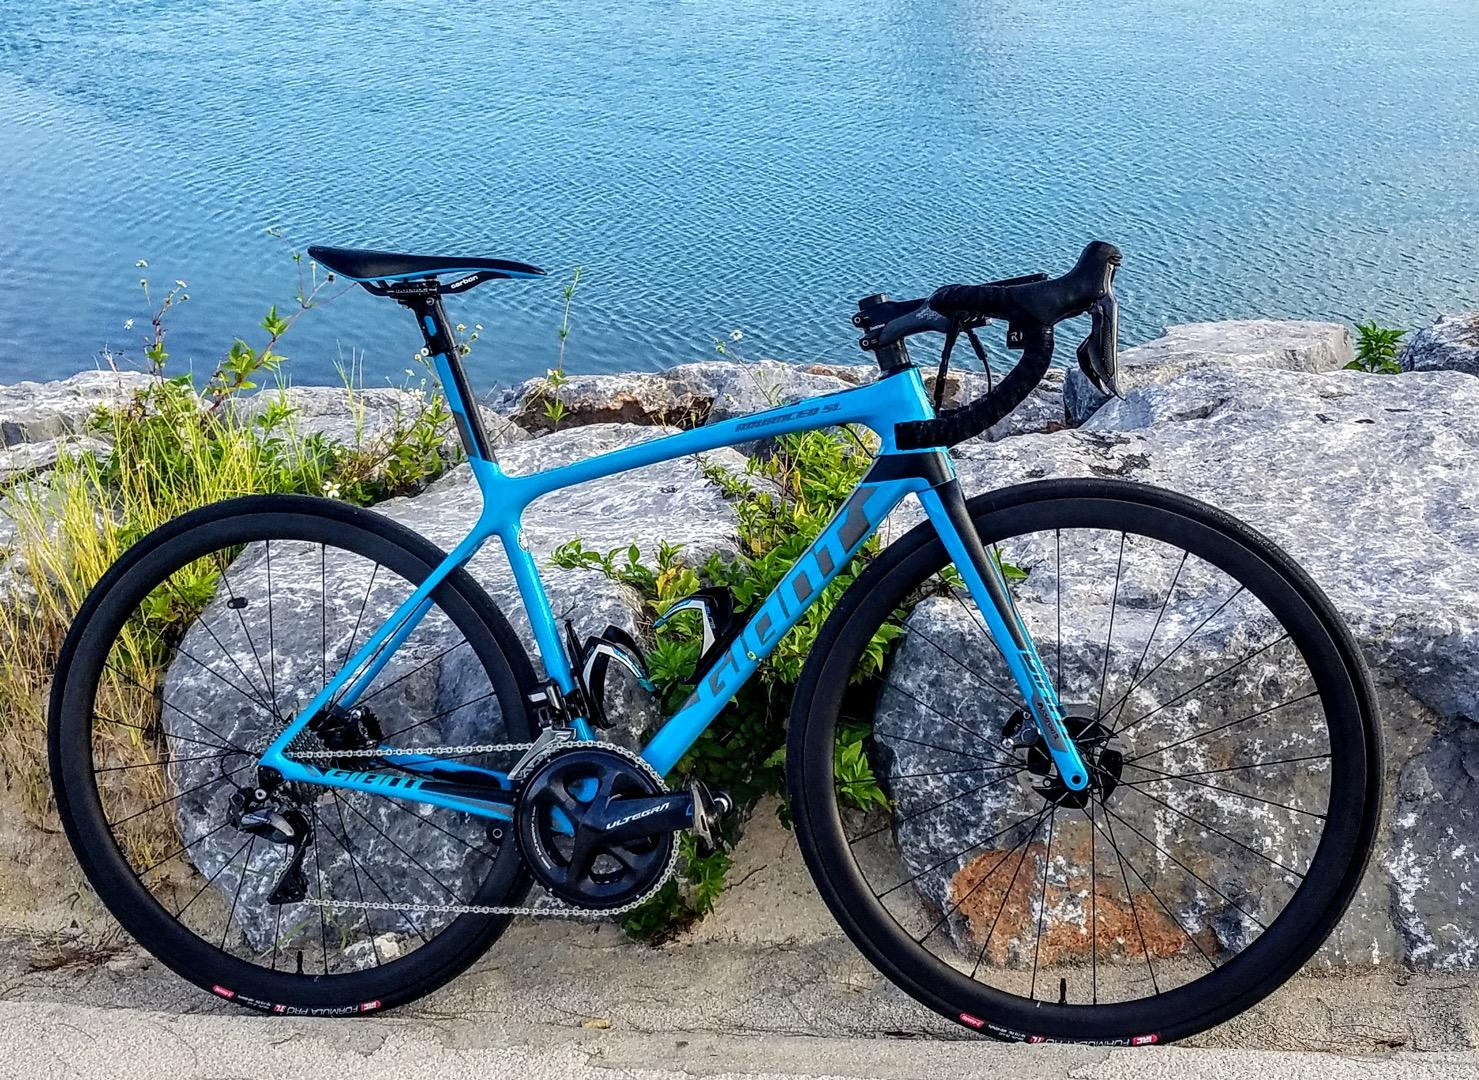 R35-carbon-wheelset-on-2018-Giant-TCR-frameset-blue